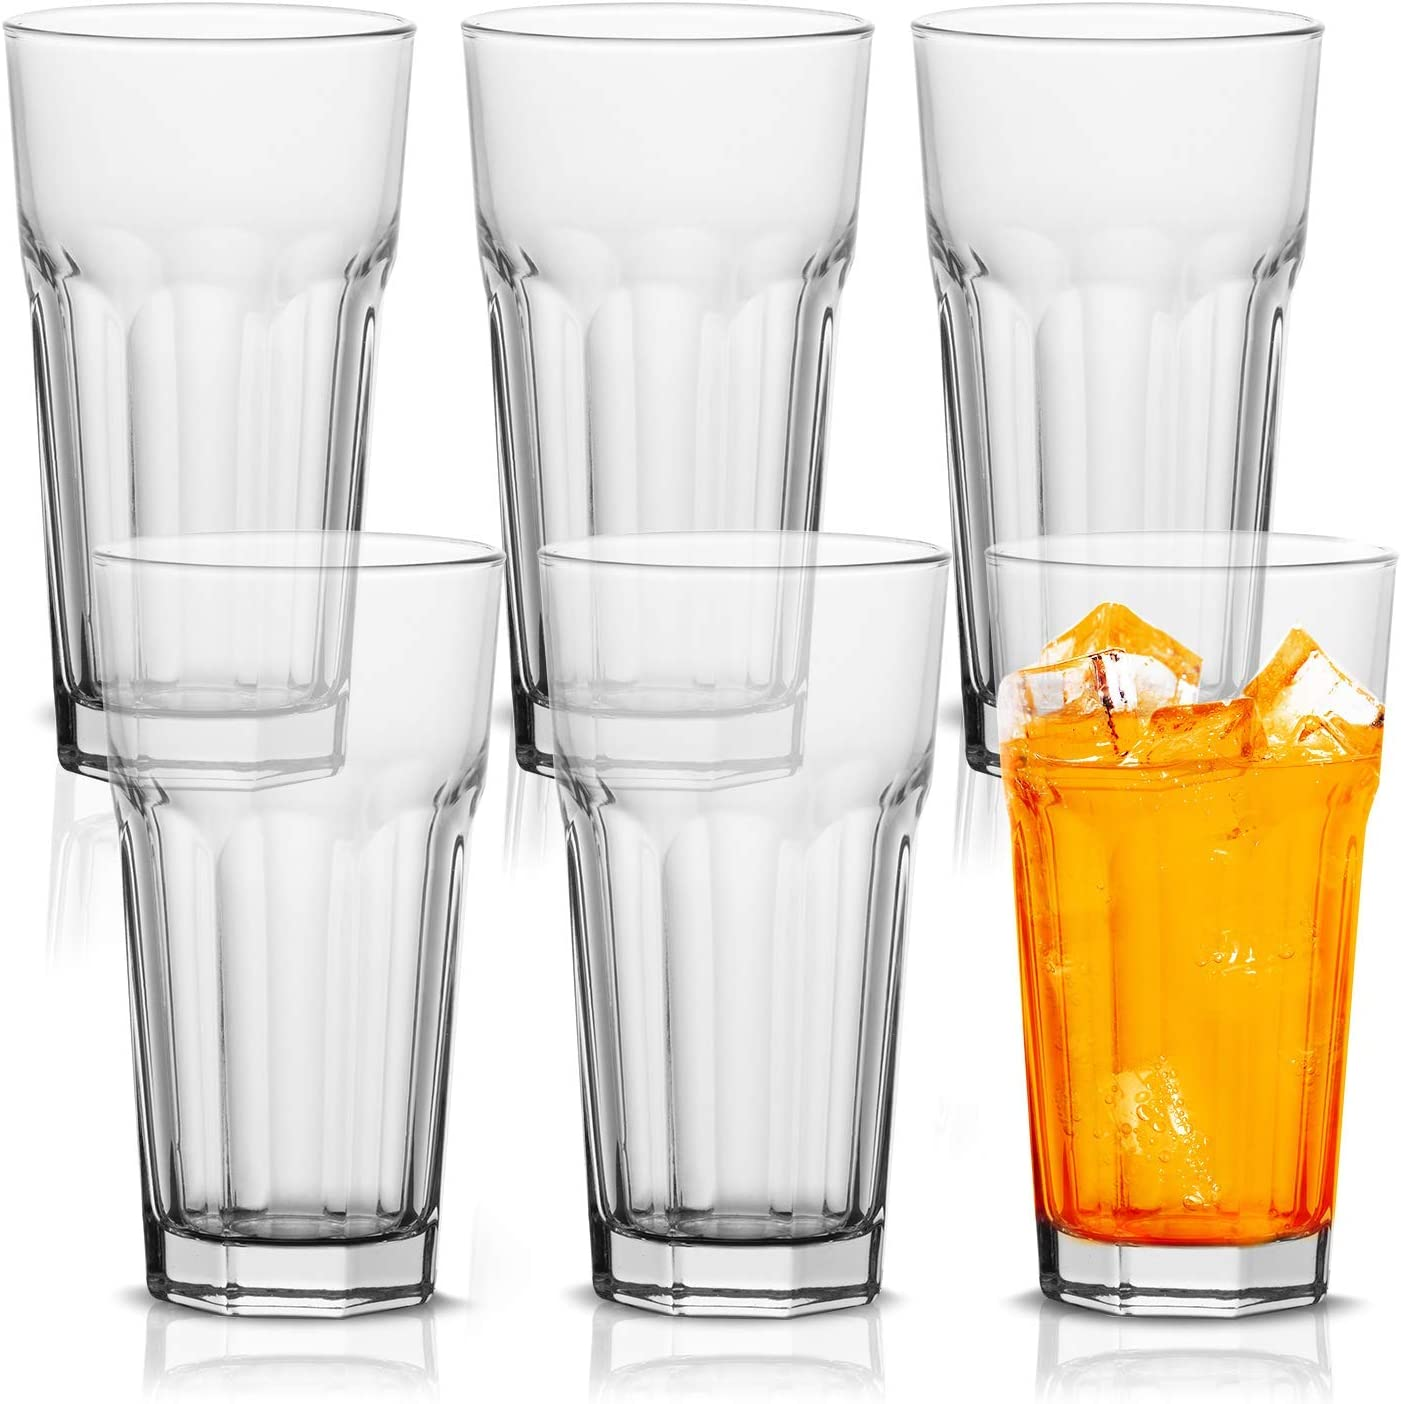 Vikko 11 Ounce Drinking Glasses: Glass Durable Thick Max 68% OFF Kitchen and Under blast sales